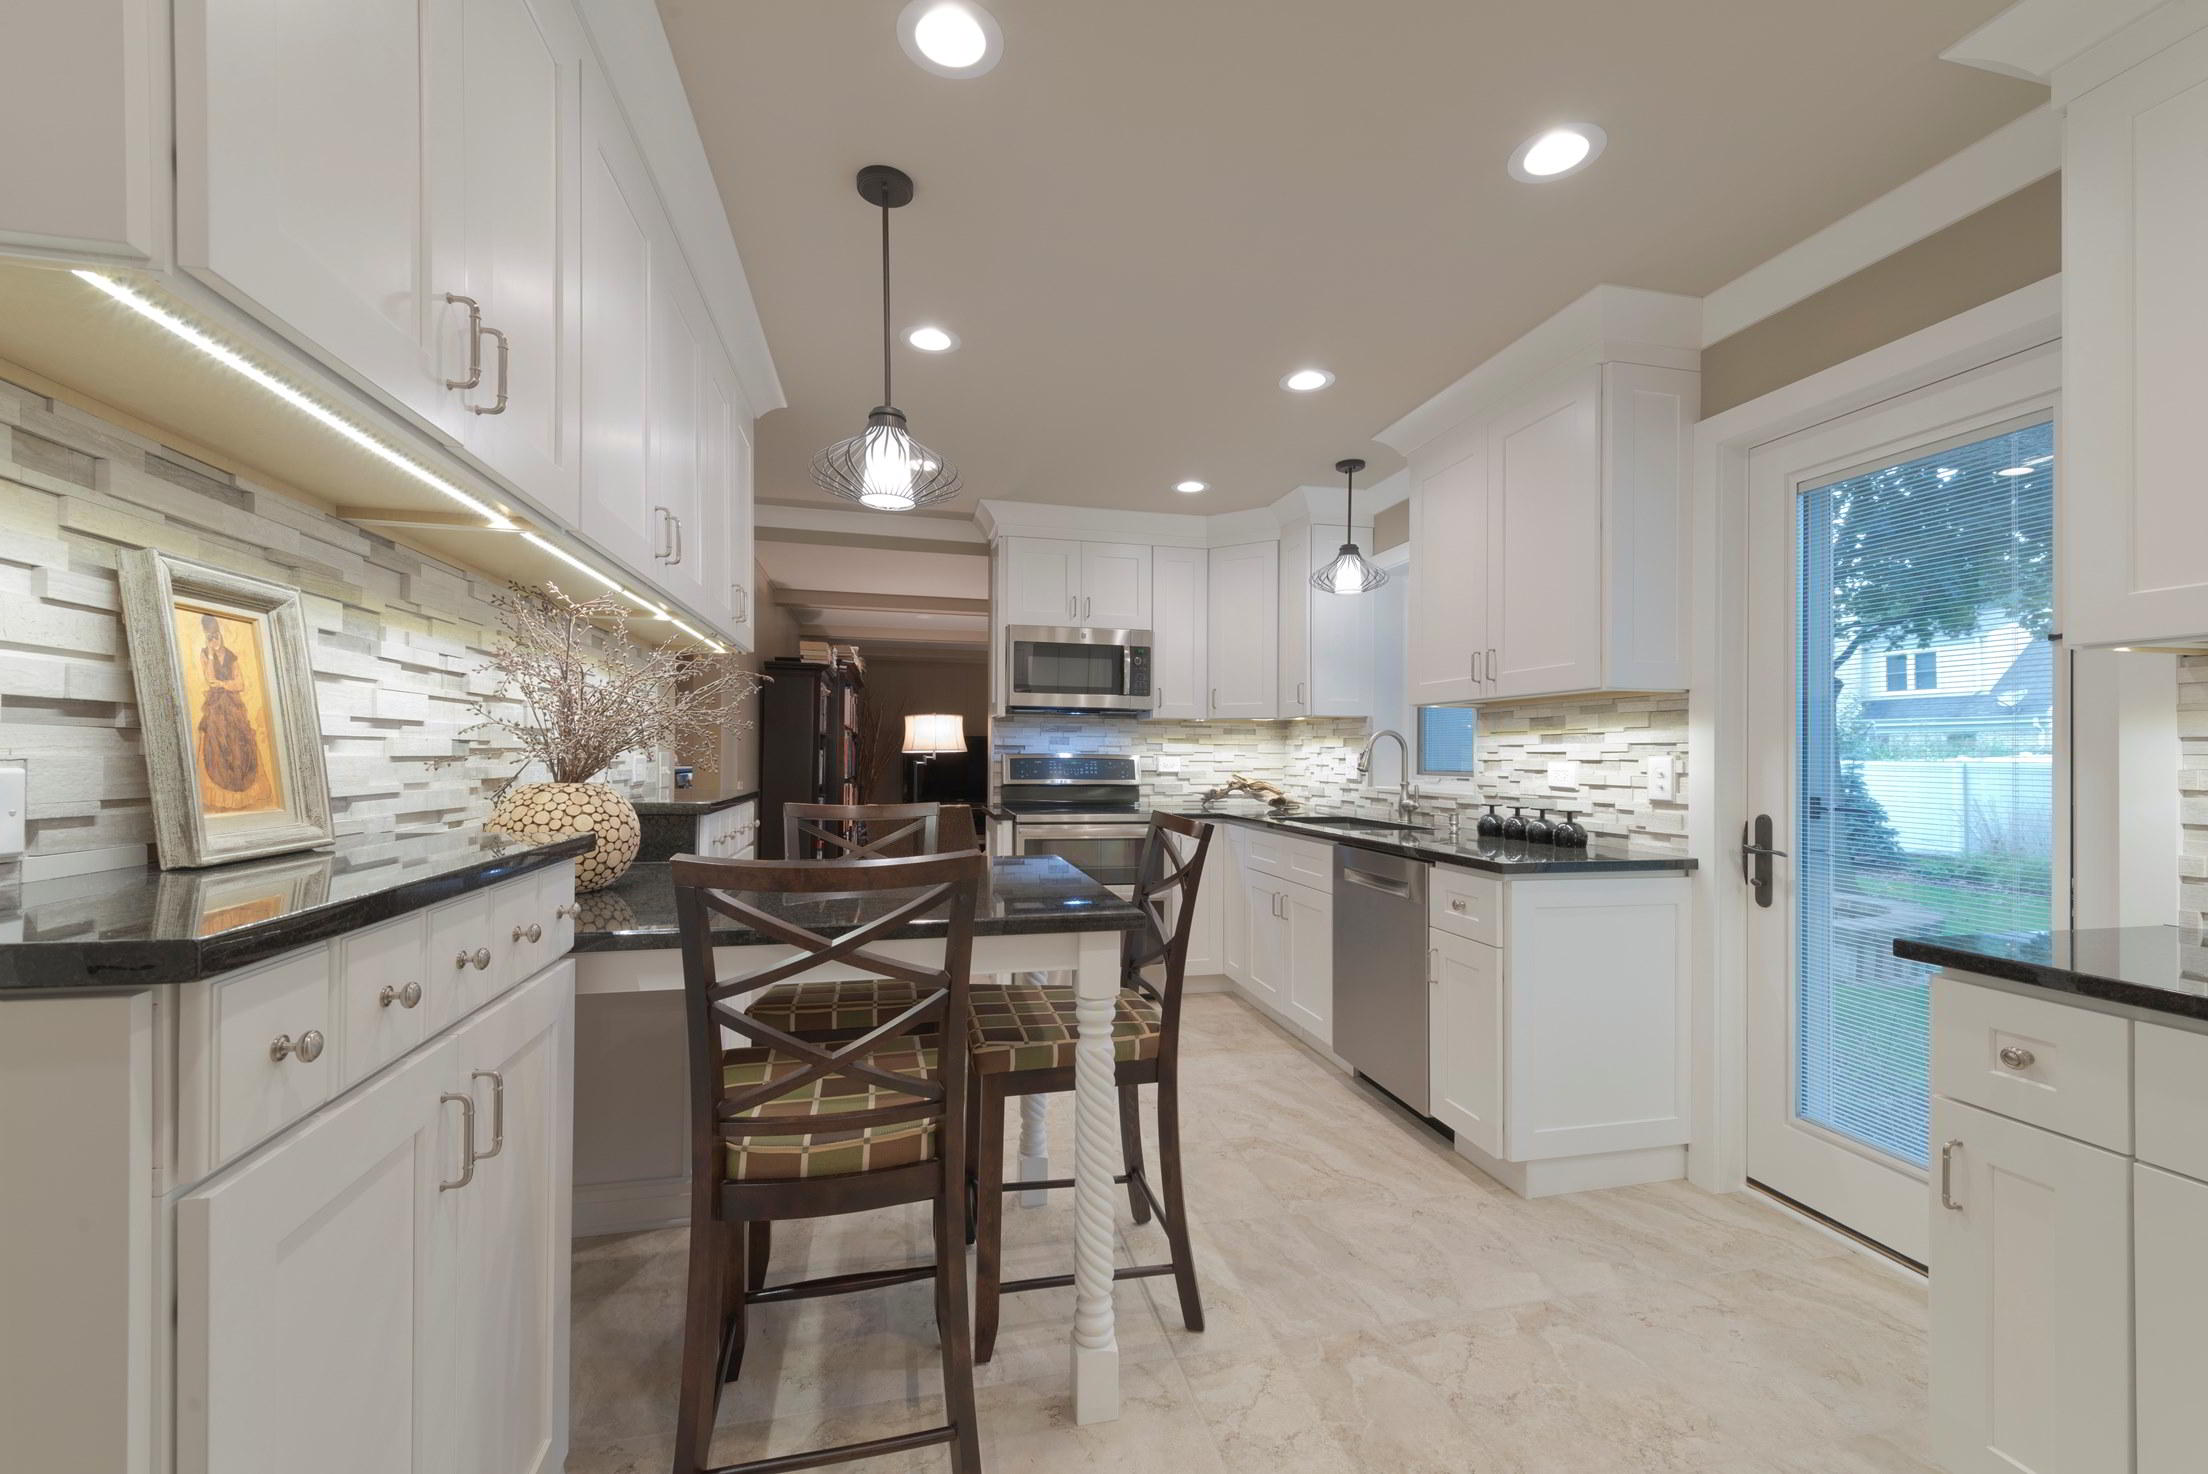 All Of Our Kitchen Renovation Projects Start With A Design Consultation.